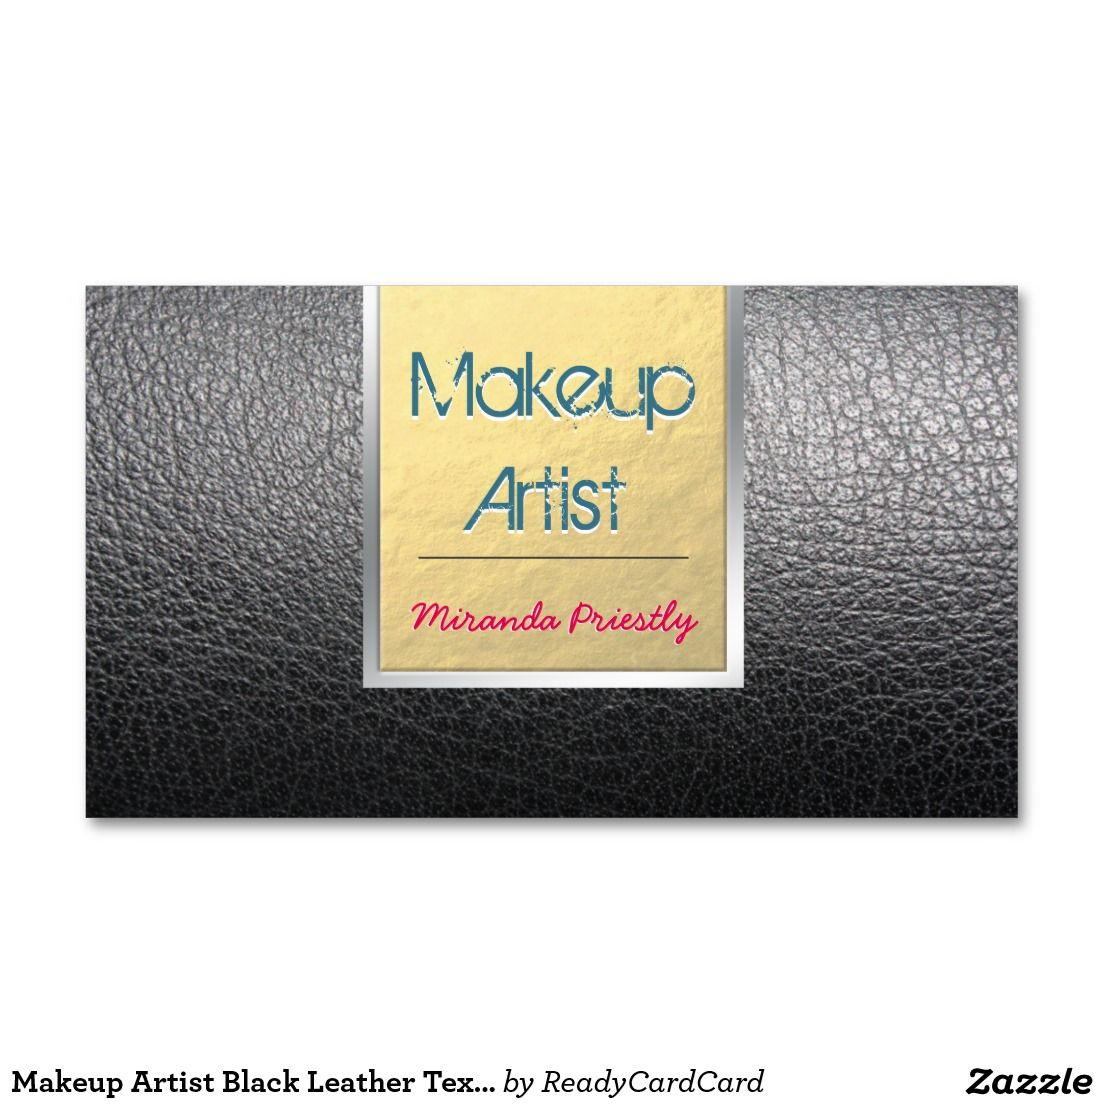 Makeup Artist Black Leather Texture Gold Strip Appointment Card